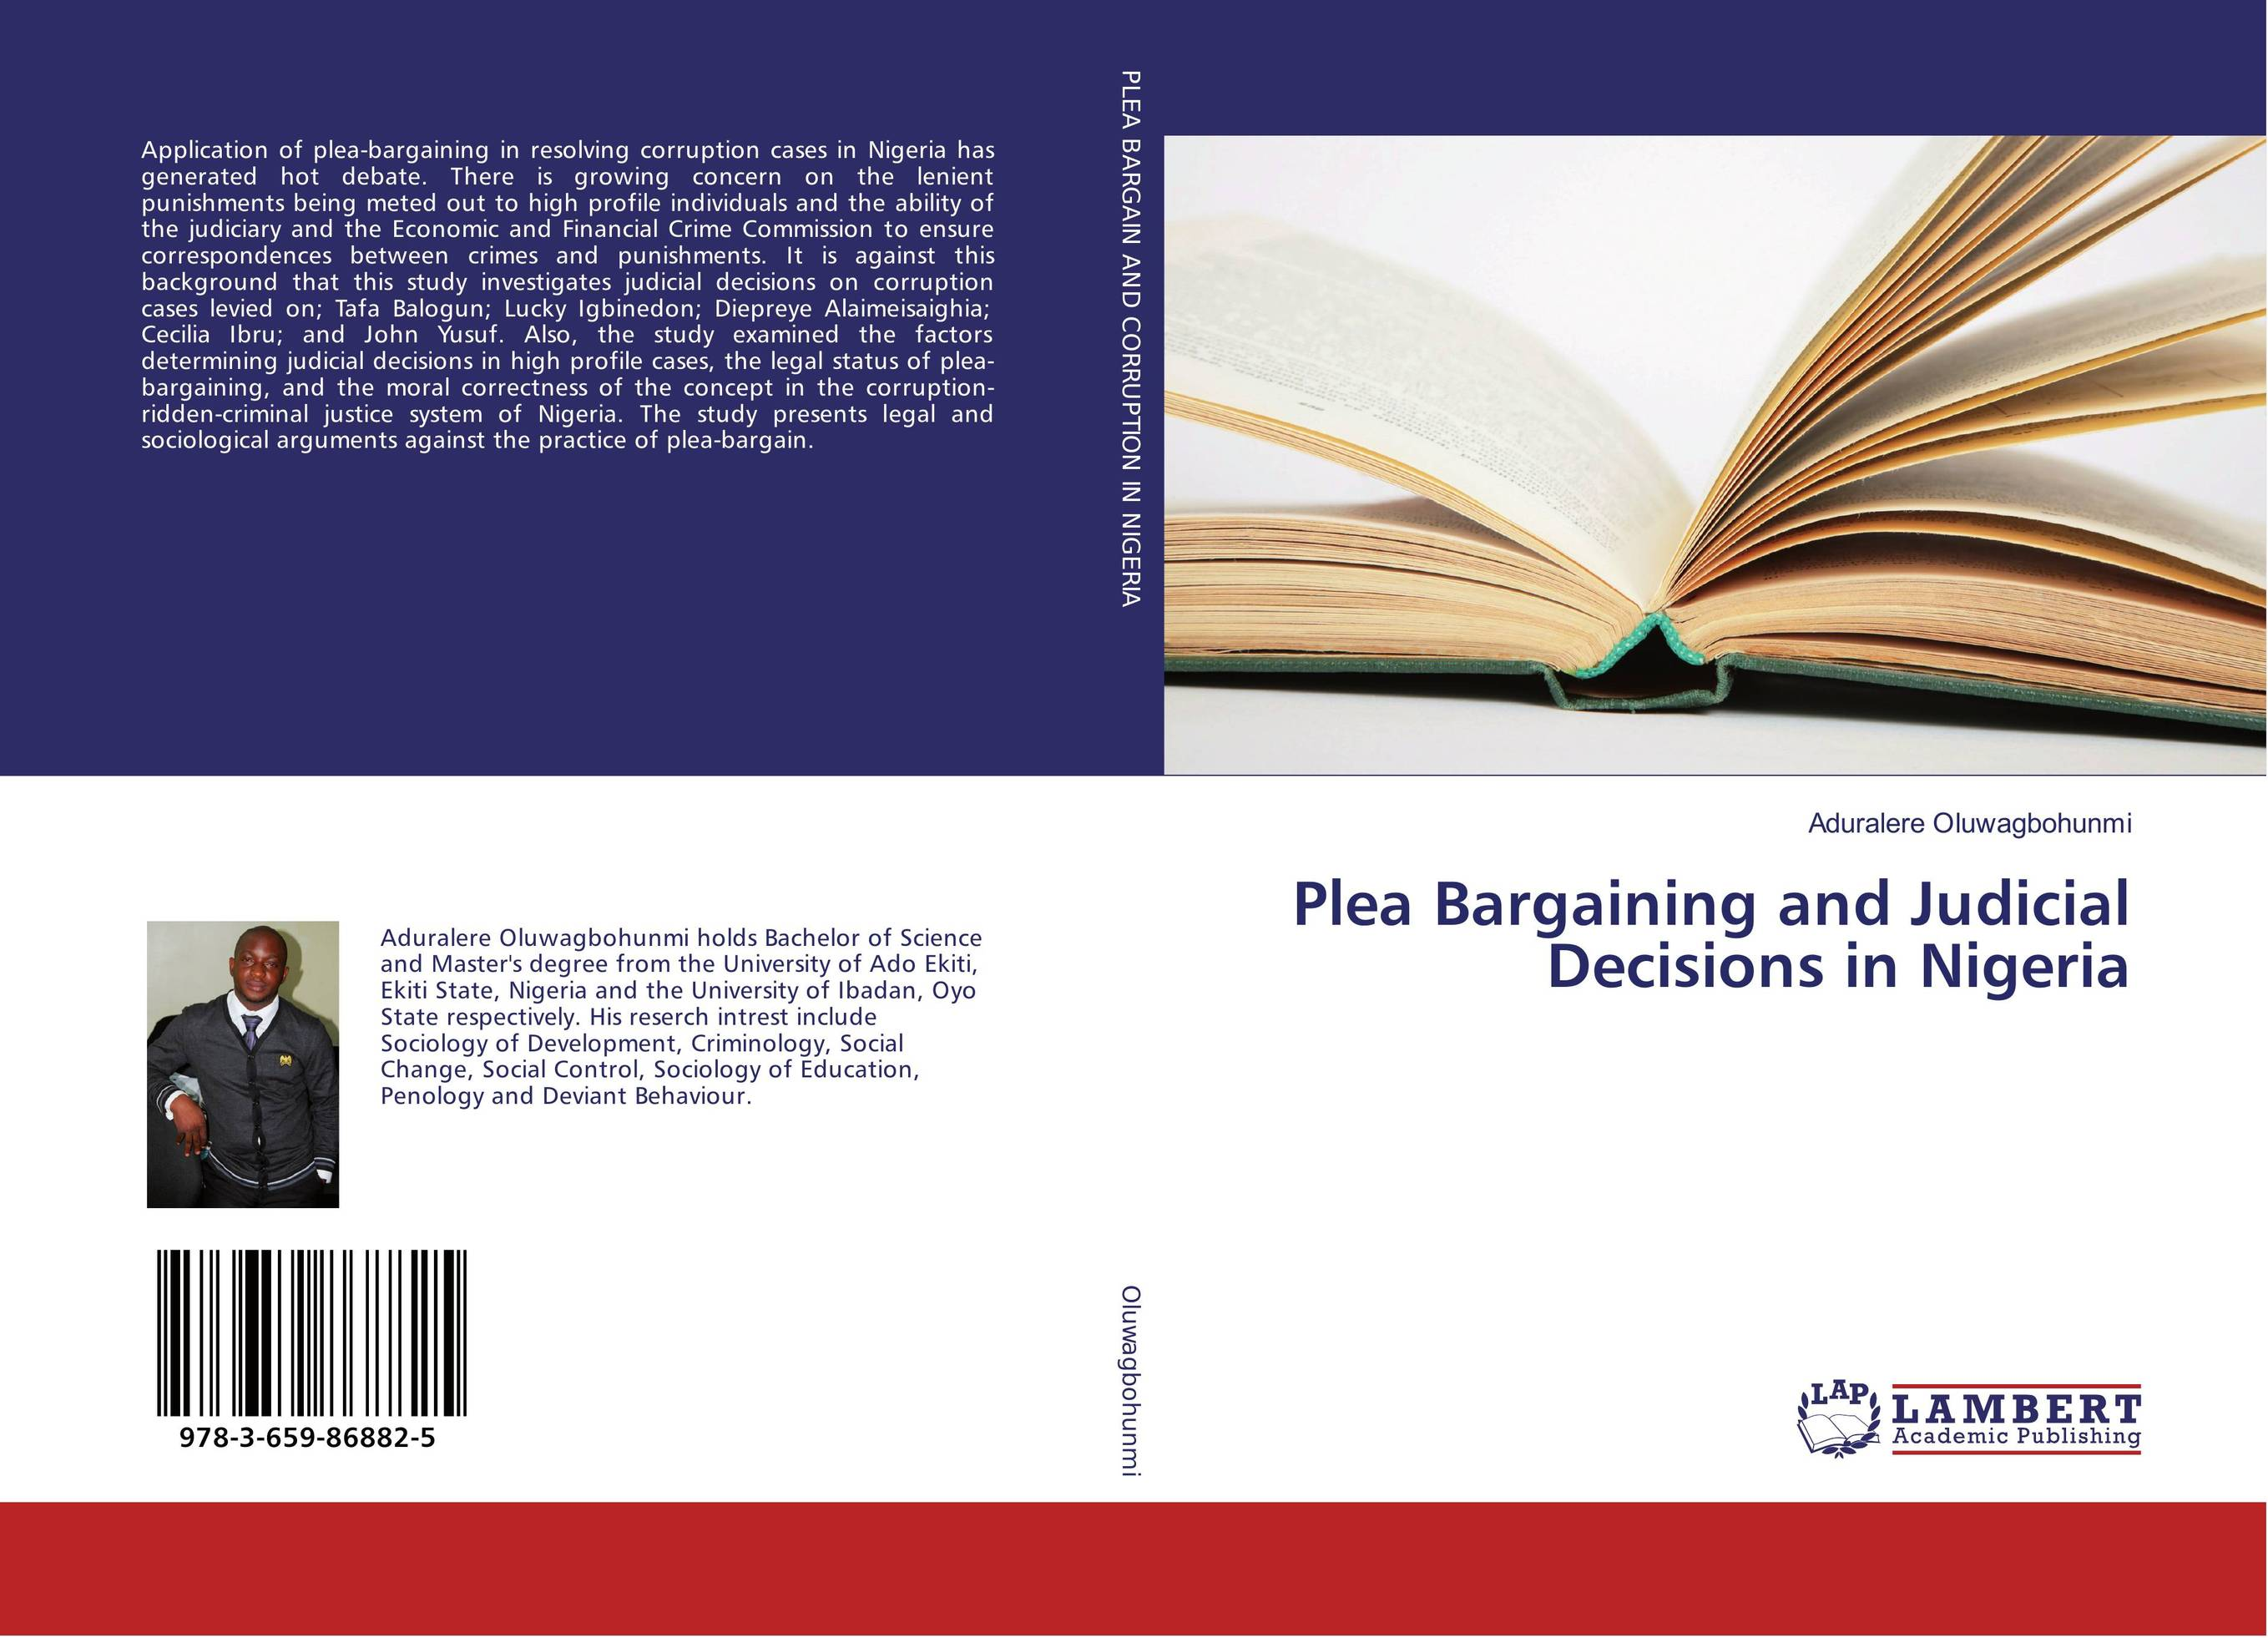 Plea Bargaining and Judicial Decisions in Nigeria postmortem epidemiological profile of burn cases